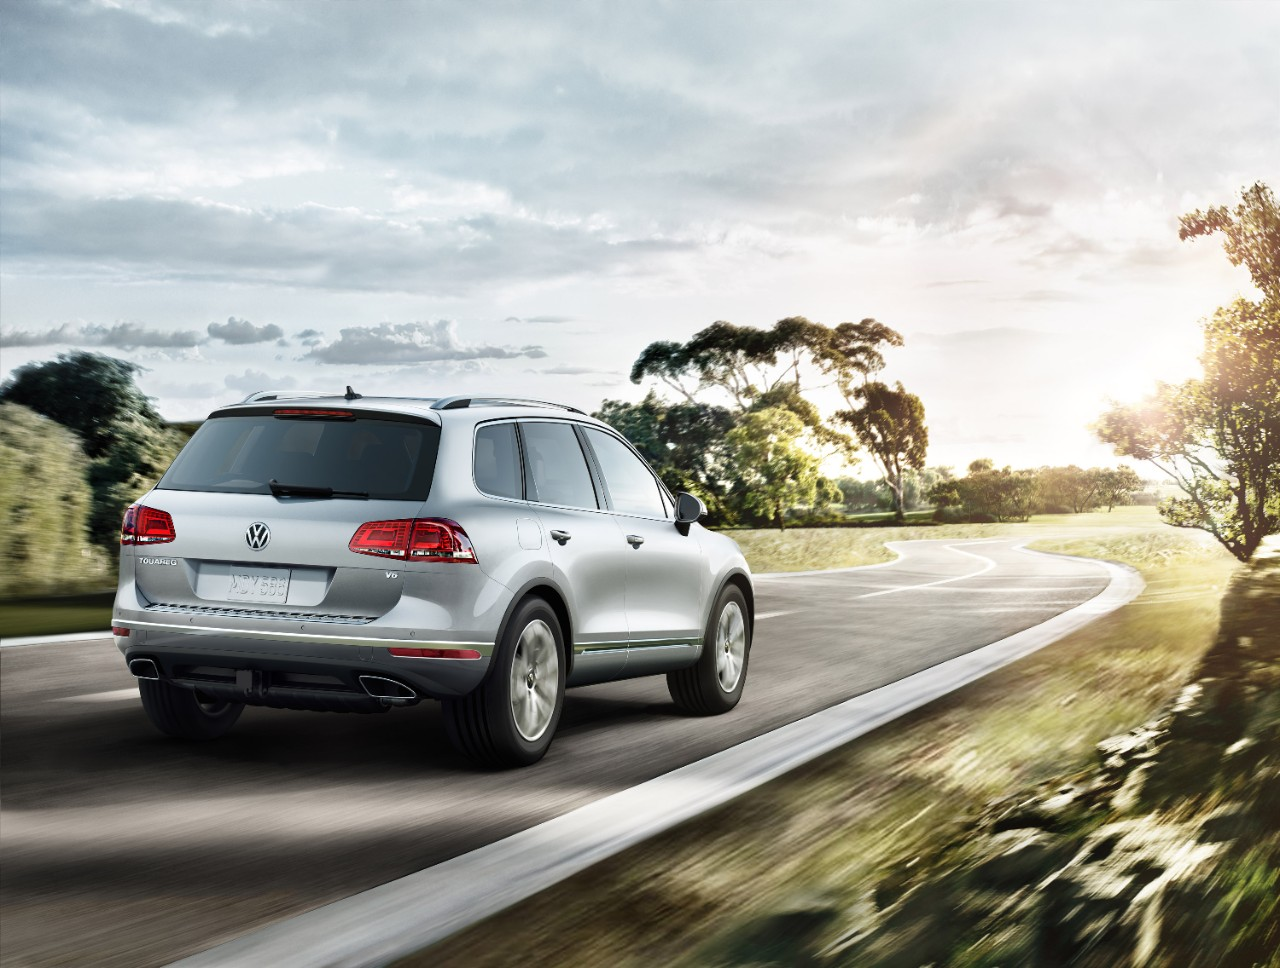 tdi price initial drives volkswagen engineering forum test ownership underrated touareg reports german